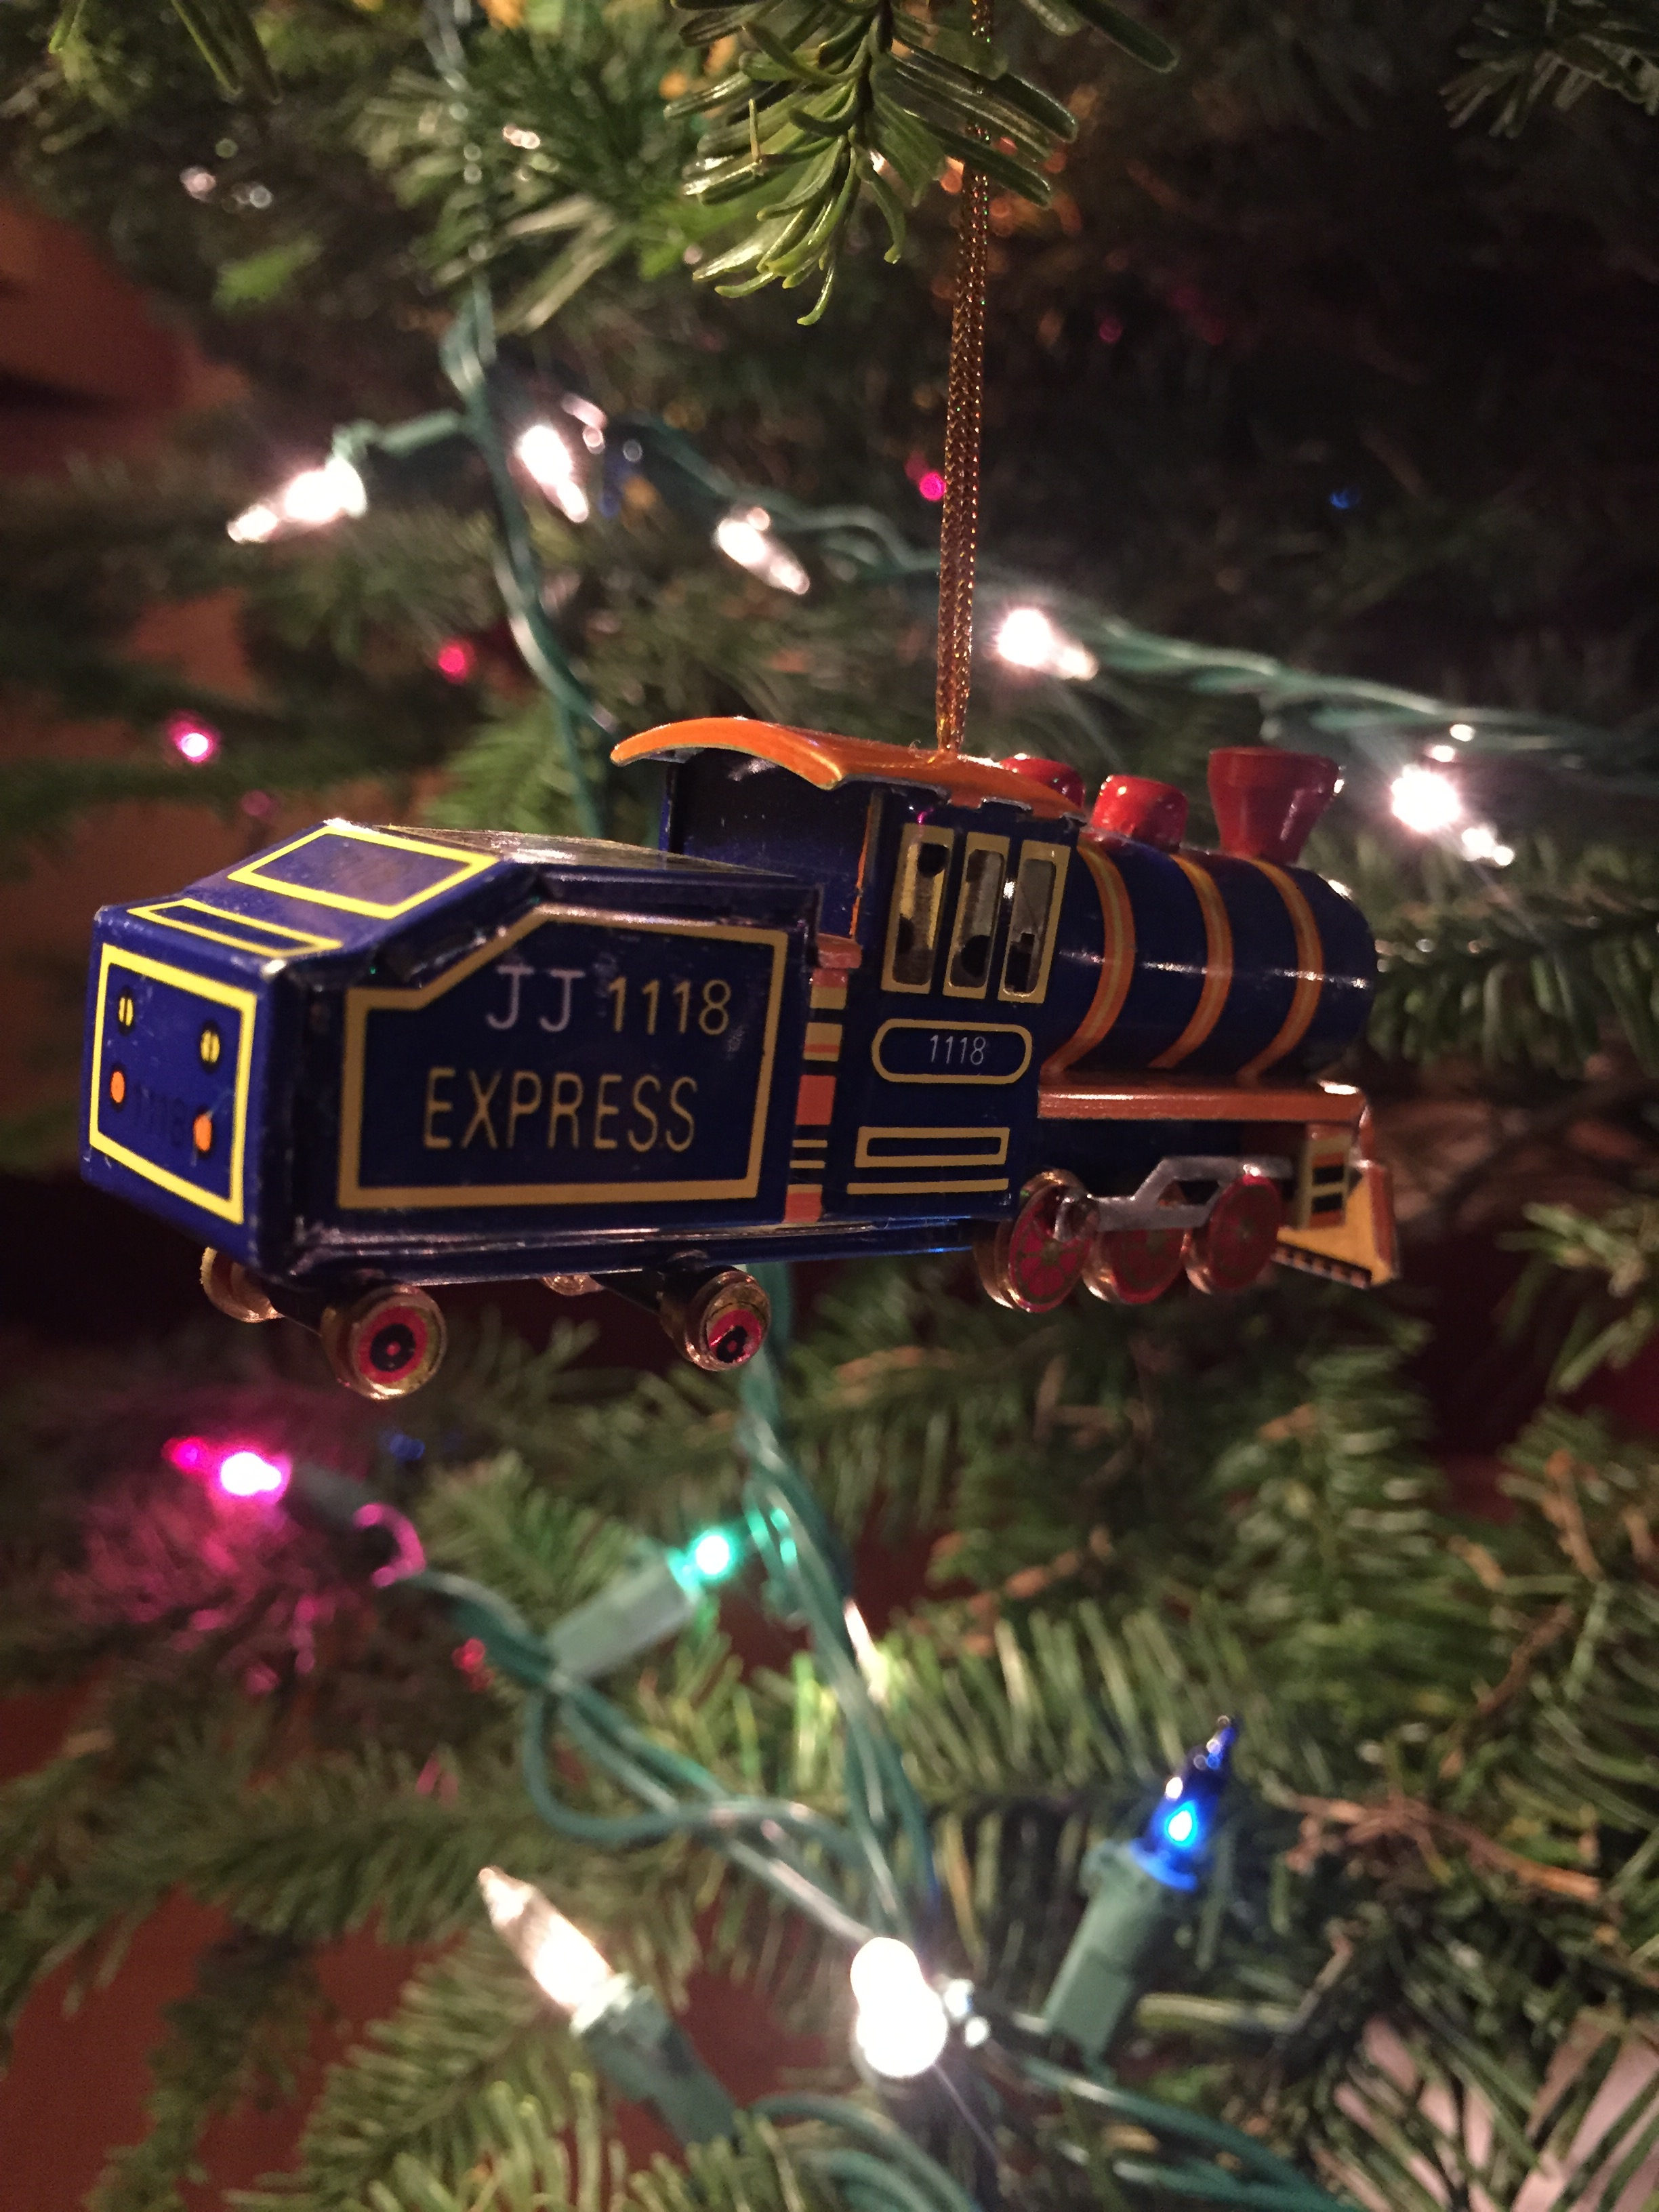 behold a train one of far too many christmas ornaments in our familys collection every year i try to cull through them the past few years ive been